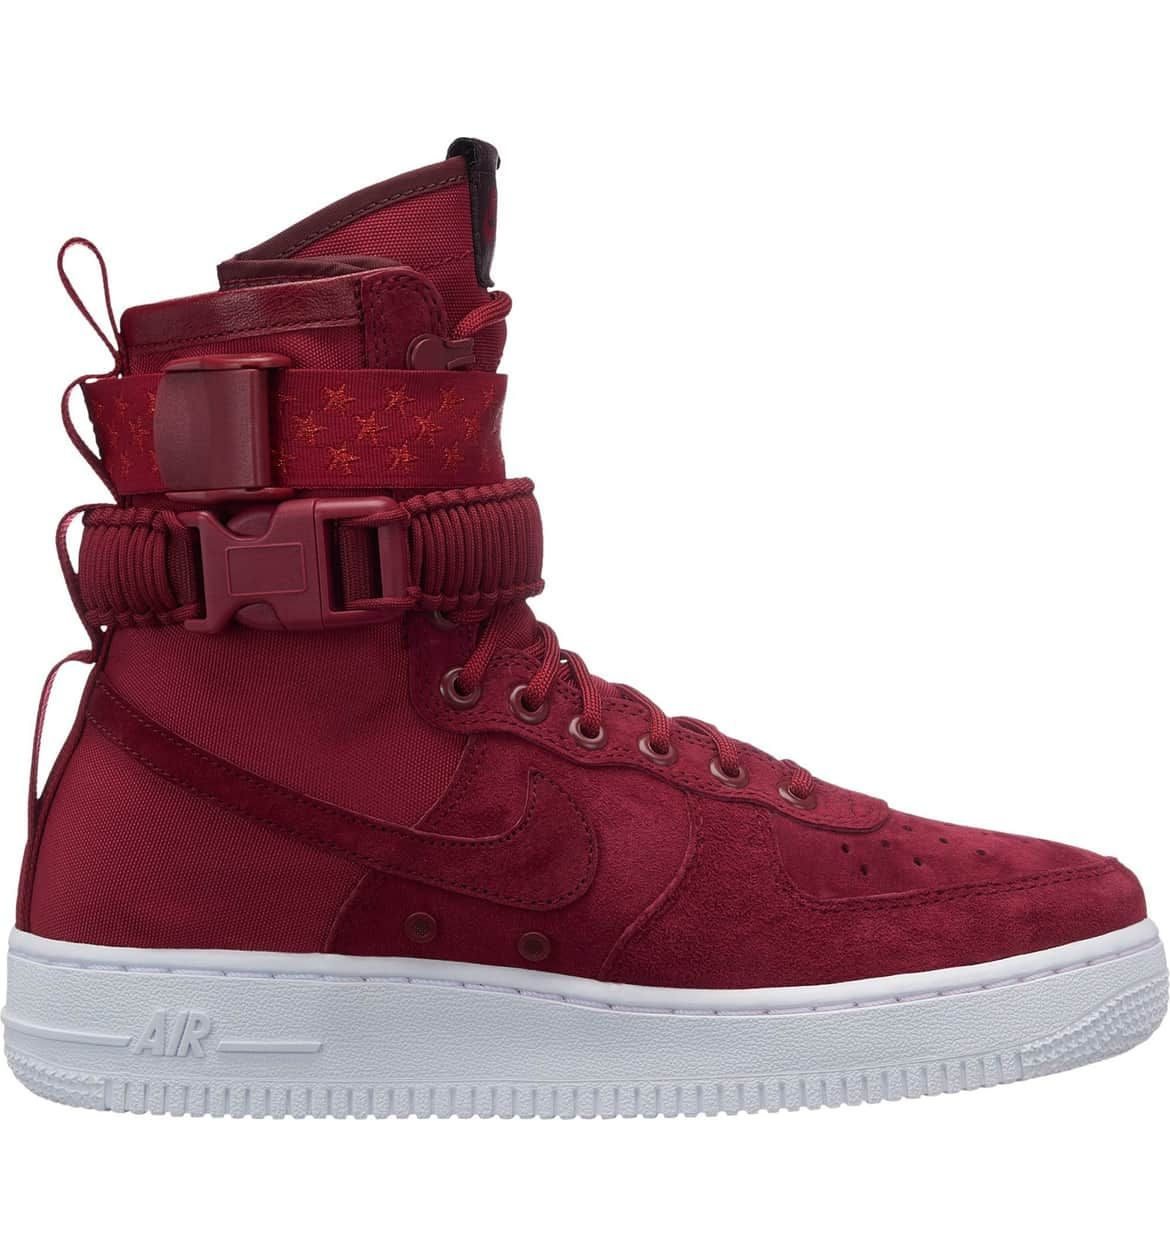 Nike Sf Air Force 1 High Top Sneaker Women With Images Womens